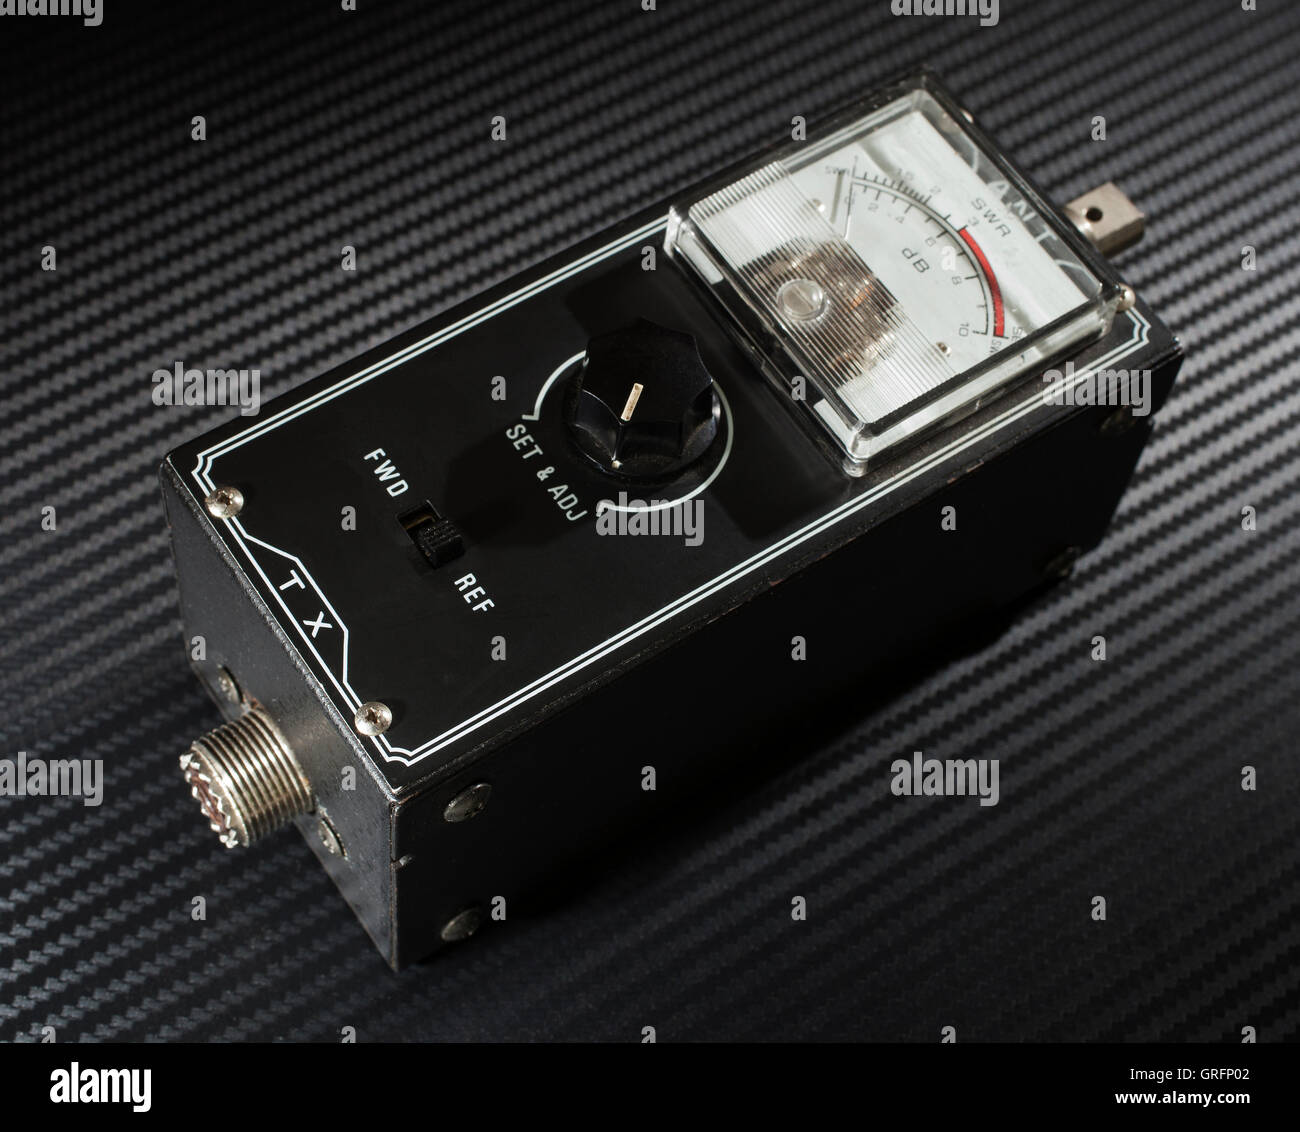 Two Way Switch Stock Photos Images Alamy Meter That Is Used To Measure Standing Wave Ratio On A Radio Antenna